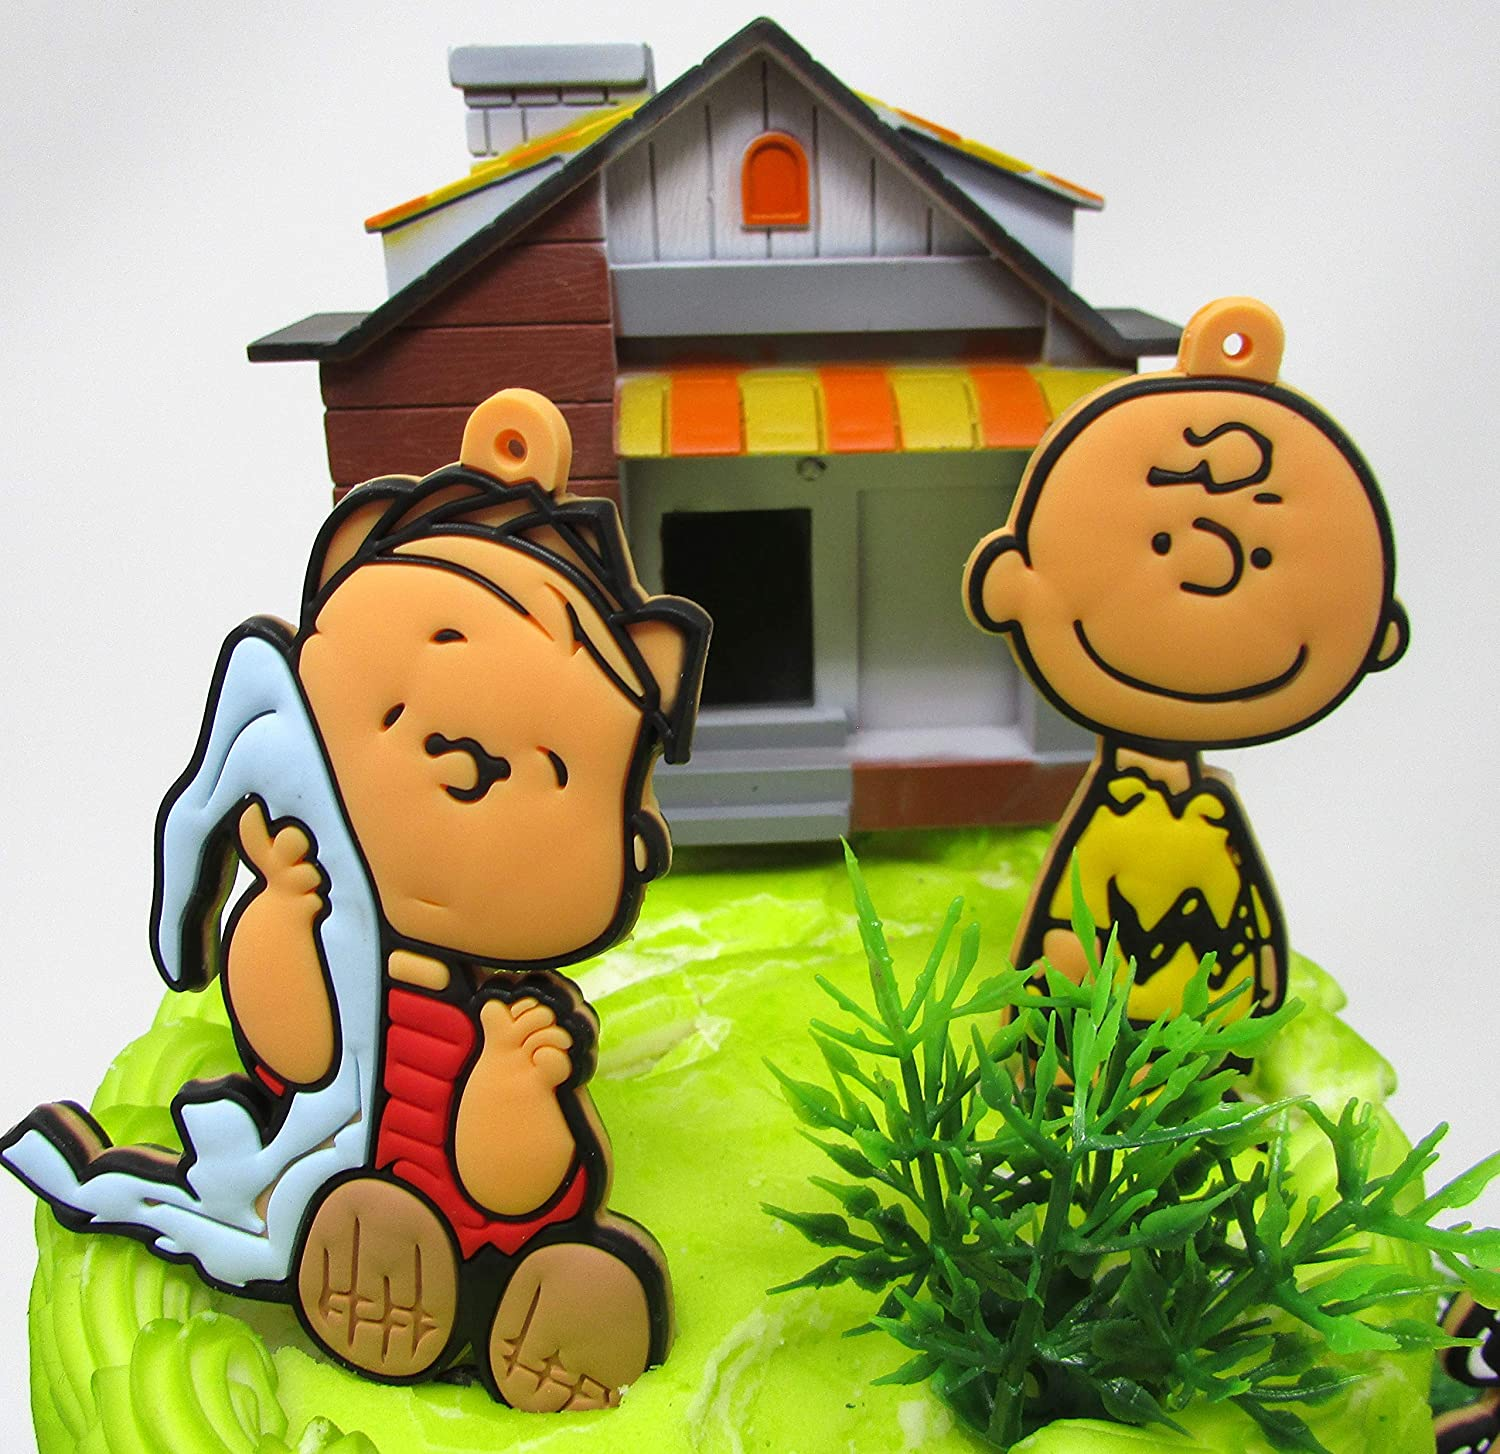 Peanuts Charlie Brown 18 Piece Birthday Cake Topper Set Featuring Charlie Brown Schroeder Linus Lucy Peppermint Patty Woodstock and More Snoopy